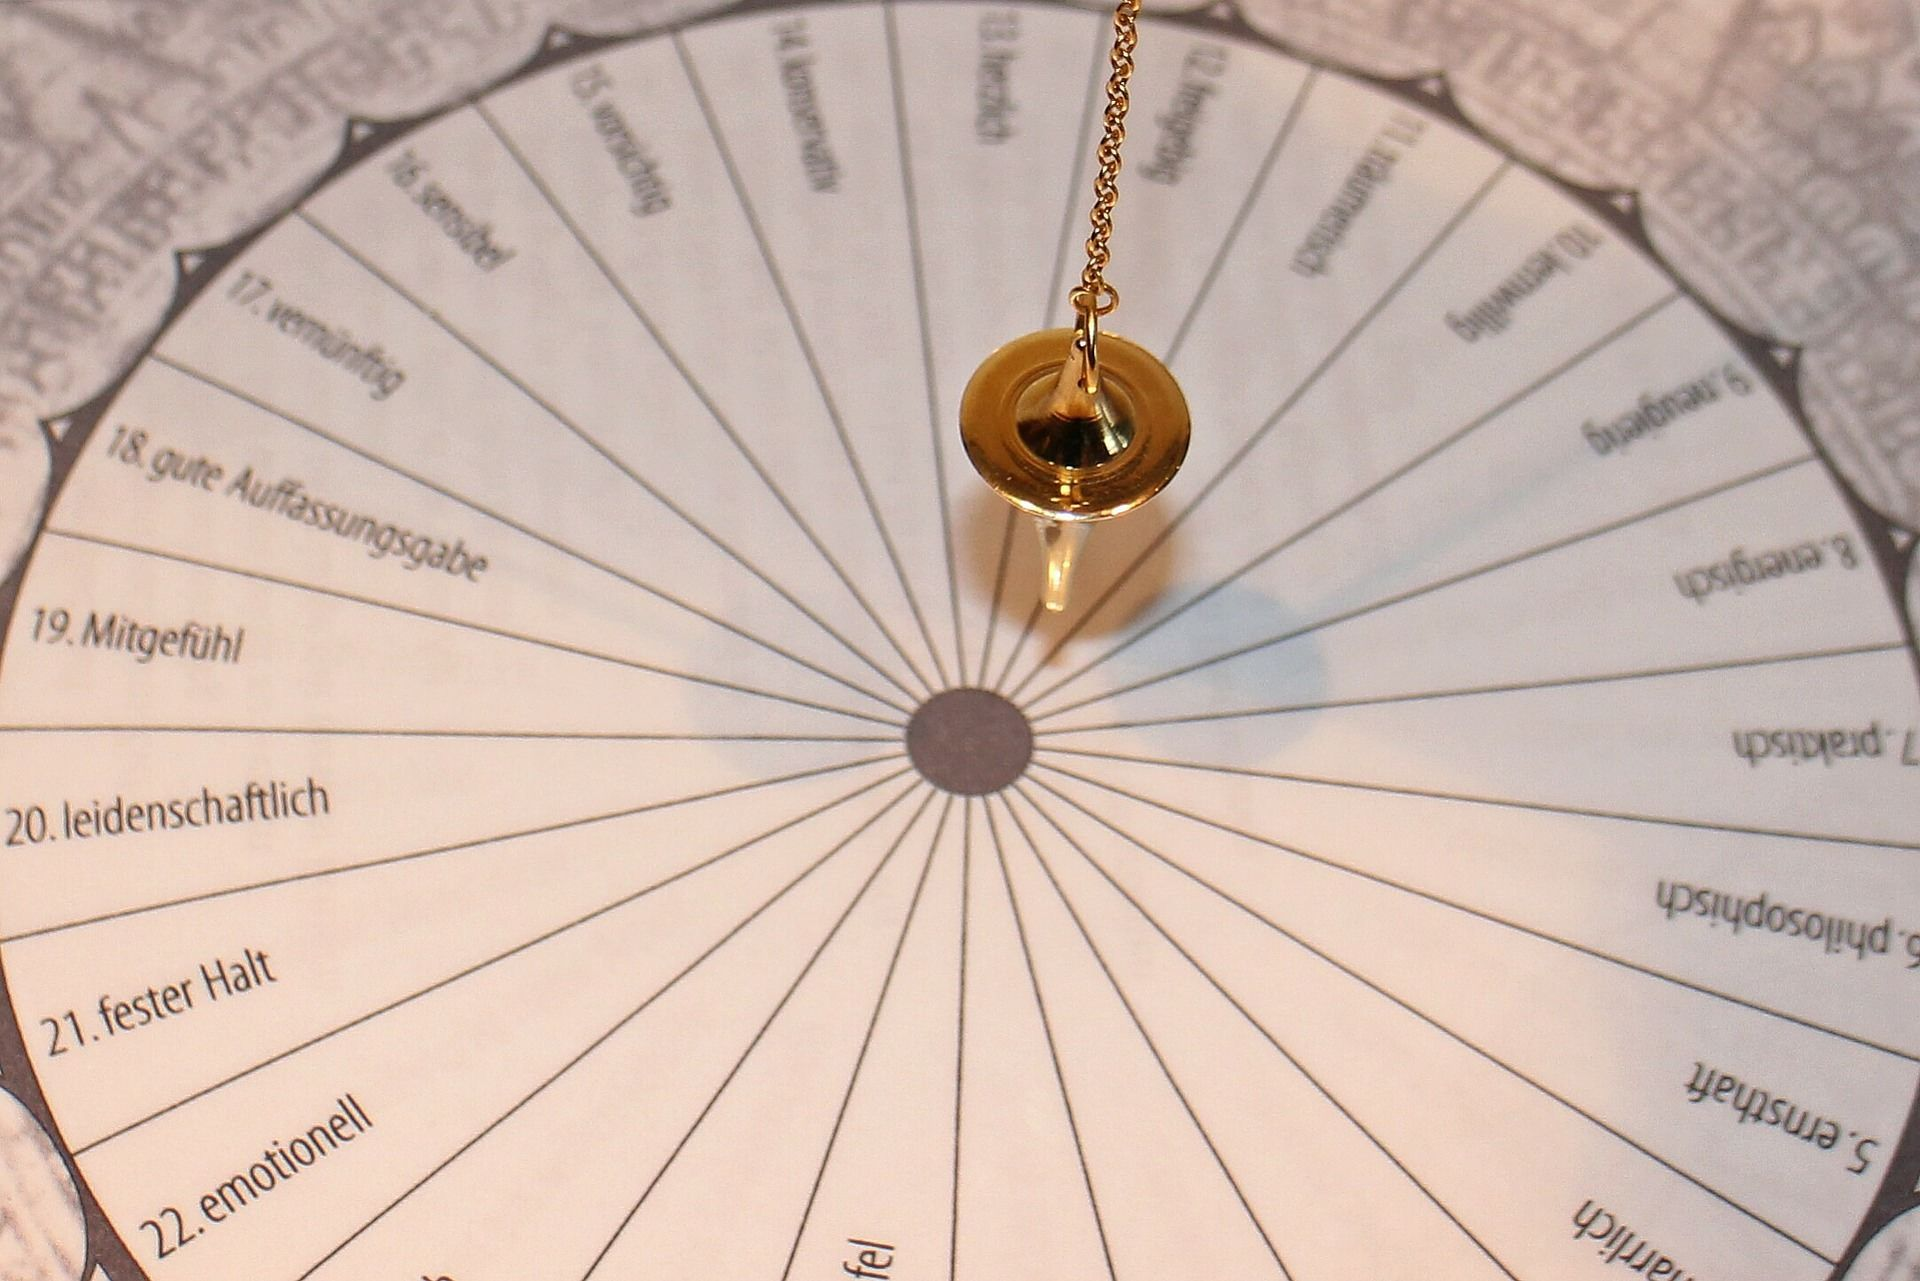 What is a pendulum?